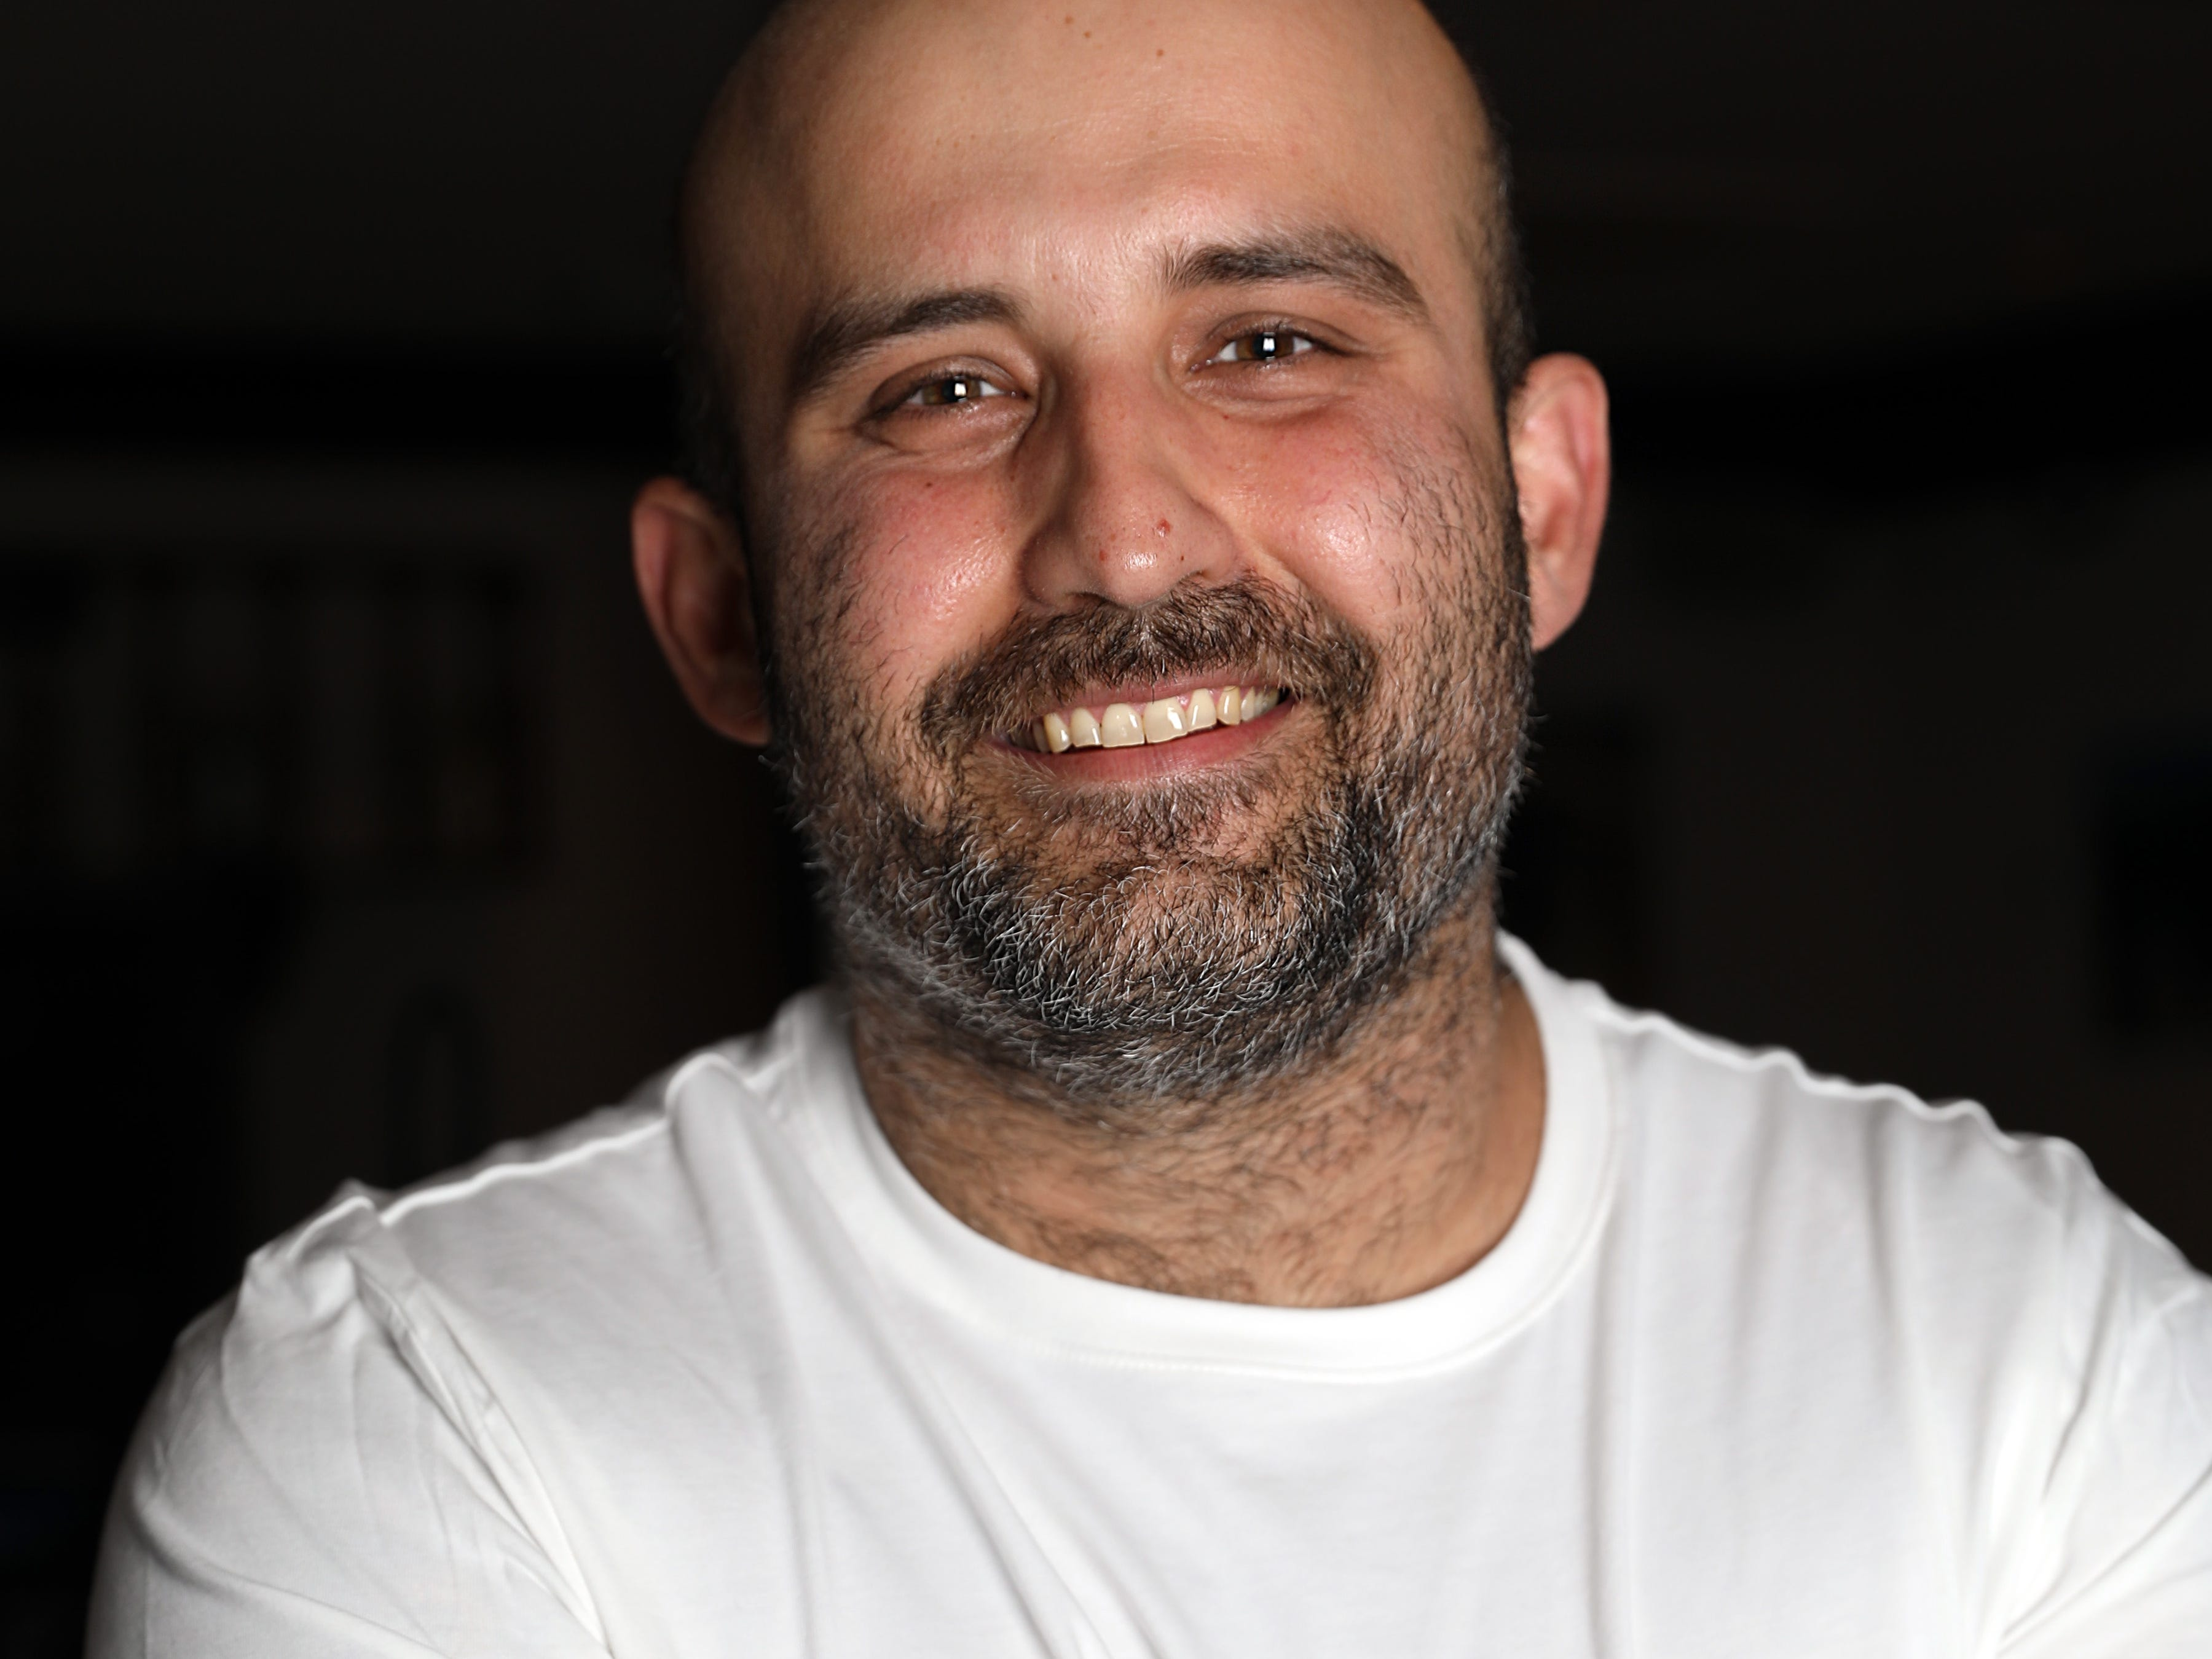 Chef George Kringas, owner of The Souvlaki Truck in Yonkers and Niko's Greek Taverna in White Plains March 22, 2019.